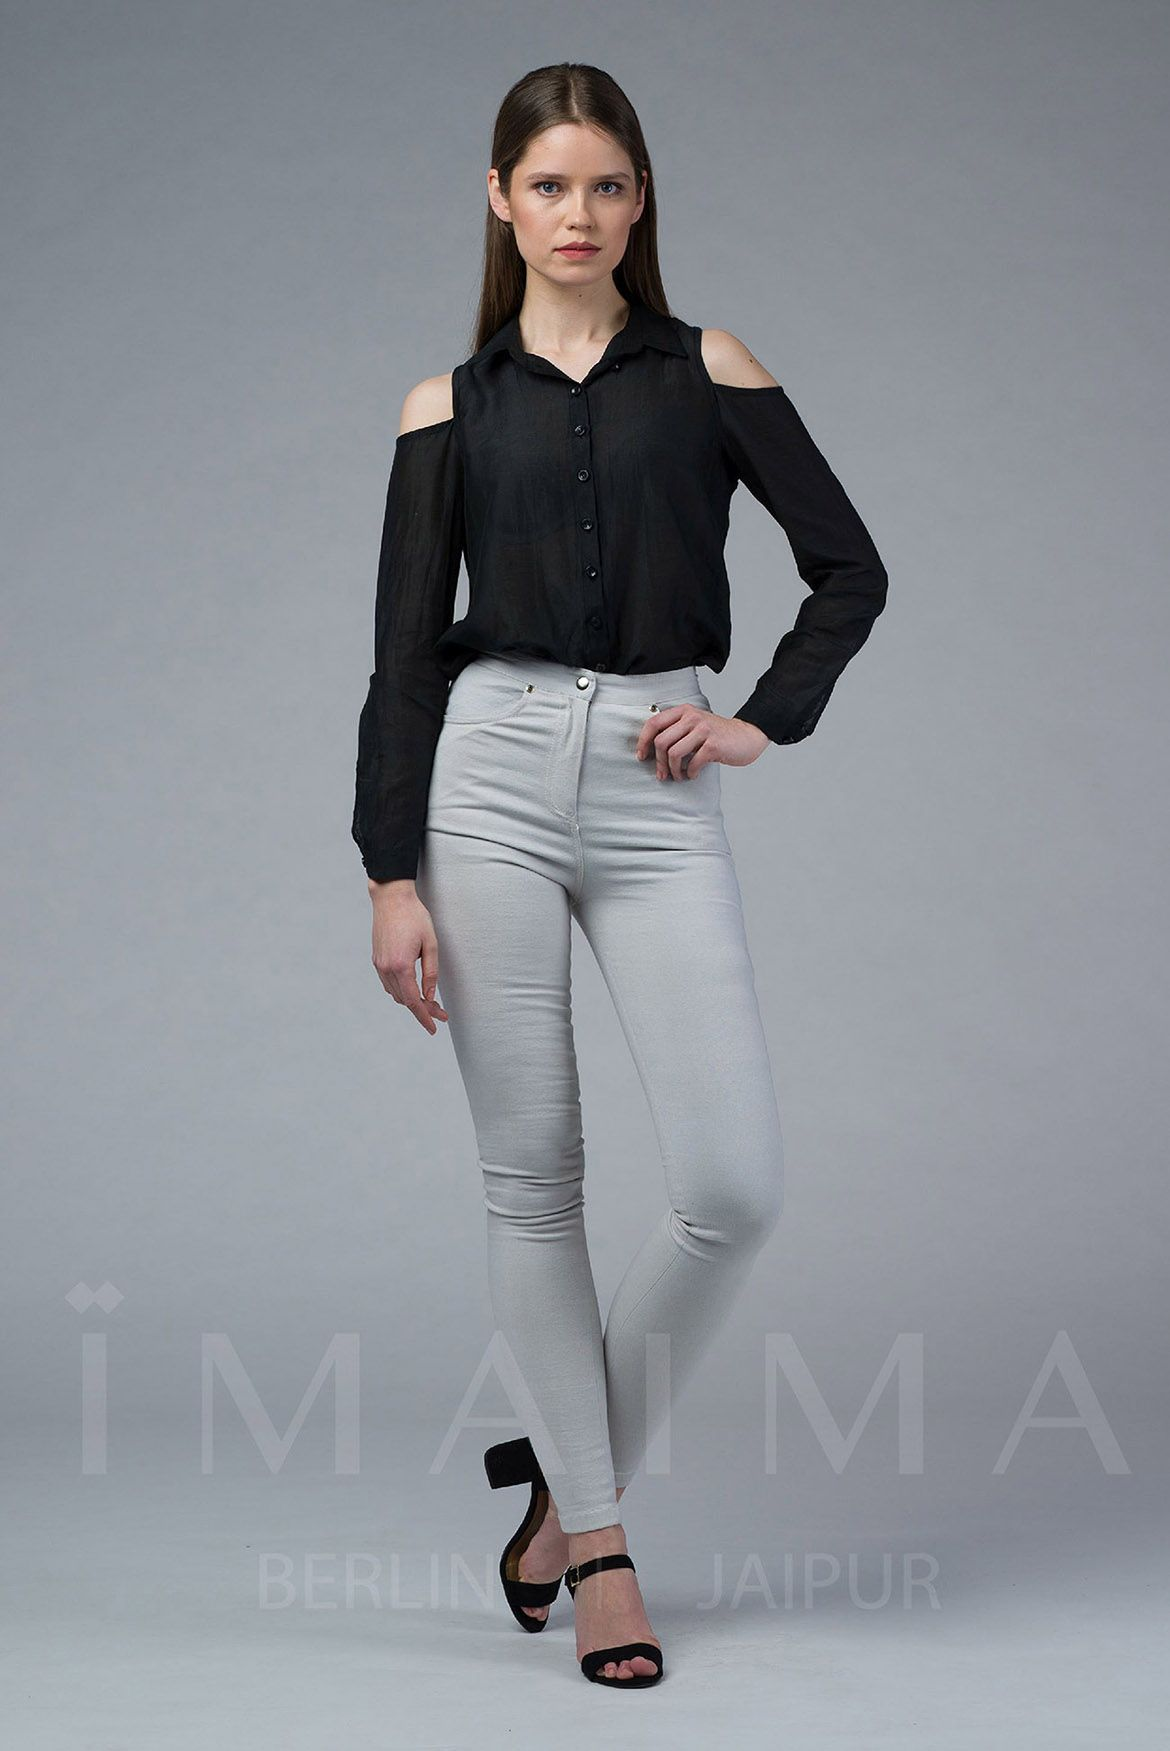 TIARA is an oversize fit silk black blouse with a polo neck and a cold shoulder. With side slits and classic button placket. TIARA has an asymmetric hem which is shorter in the front.